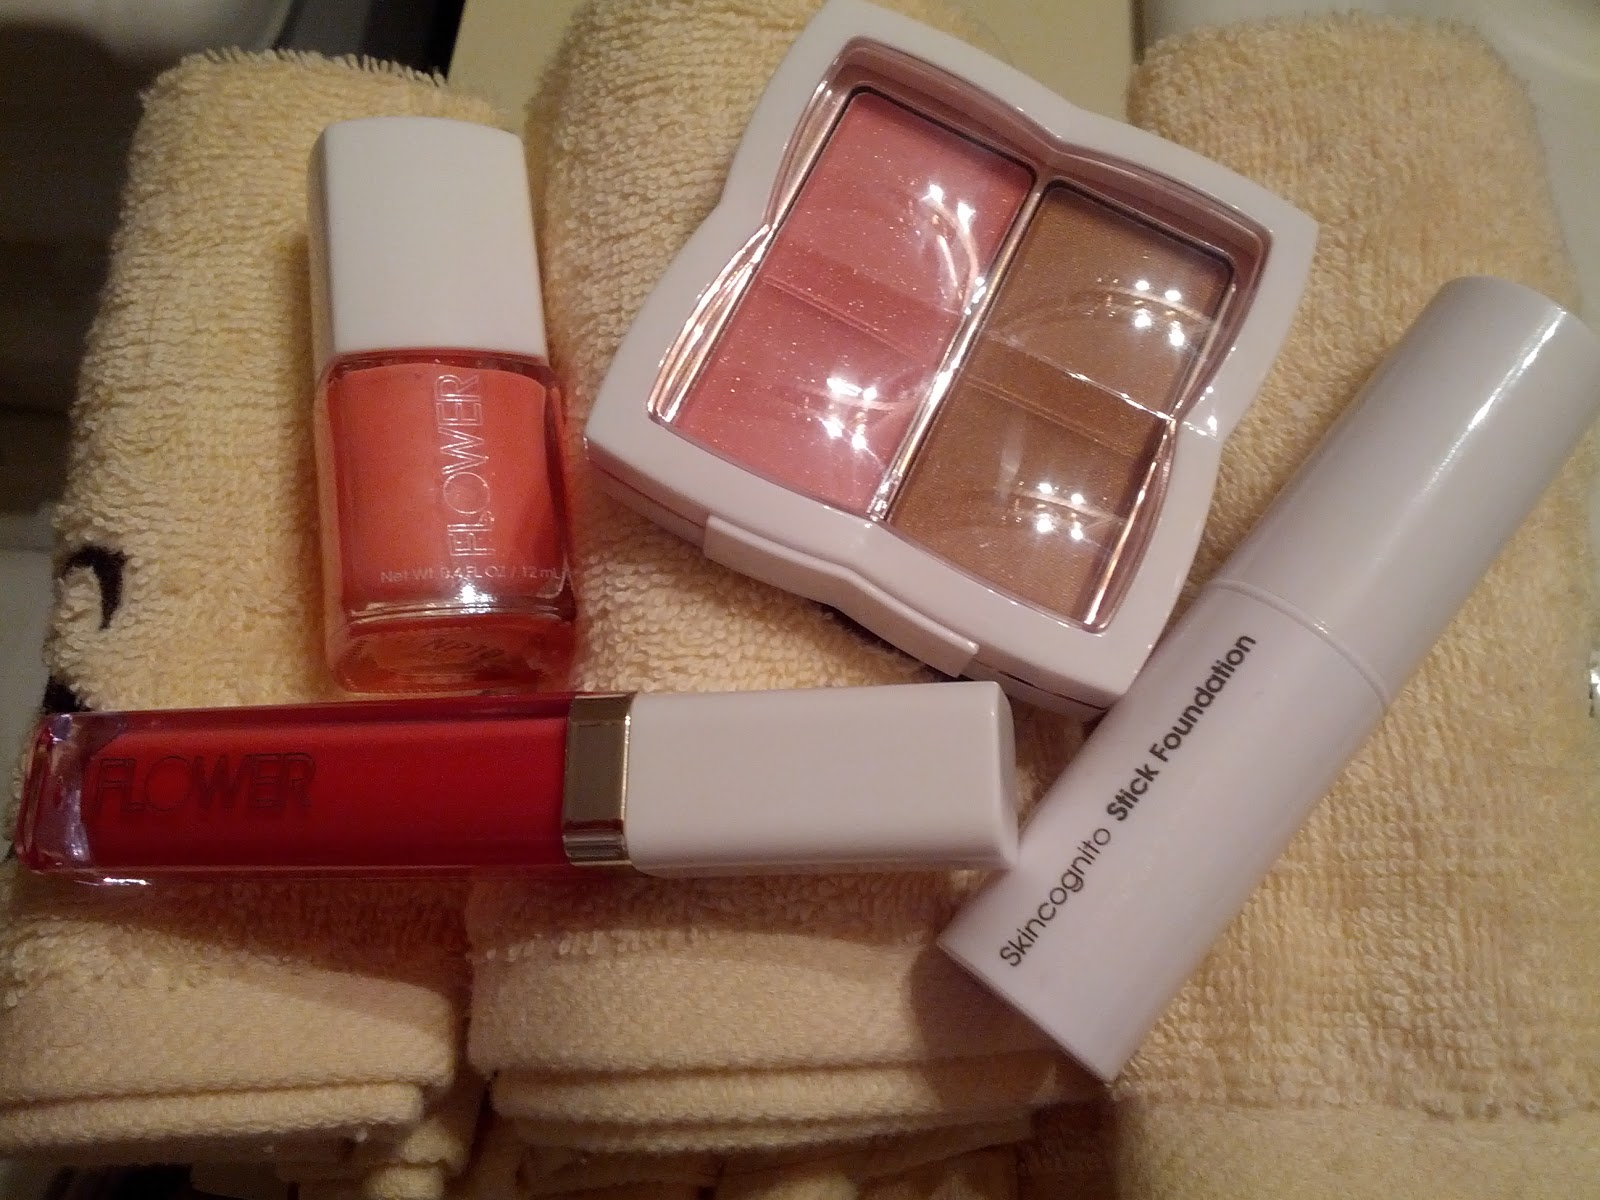 Adorable napalm bohemian rhapsody flower beauty haul and review for a week or so now ive been hearing about drew barrymores new line of walmart exclusive cruelty free cosmetics flower beauty izmirmasajfo